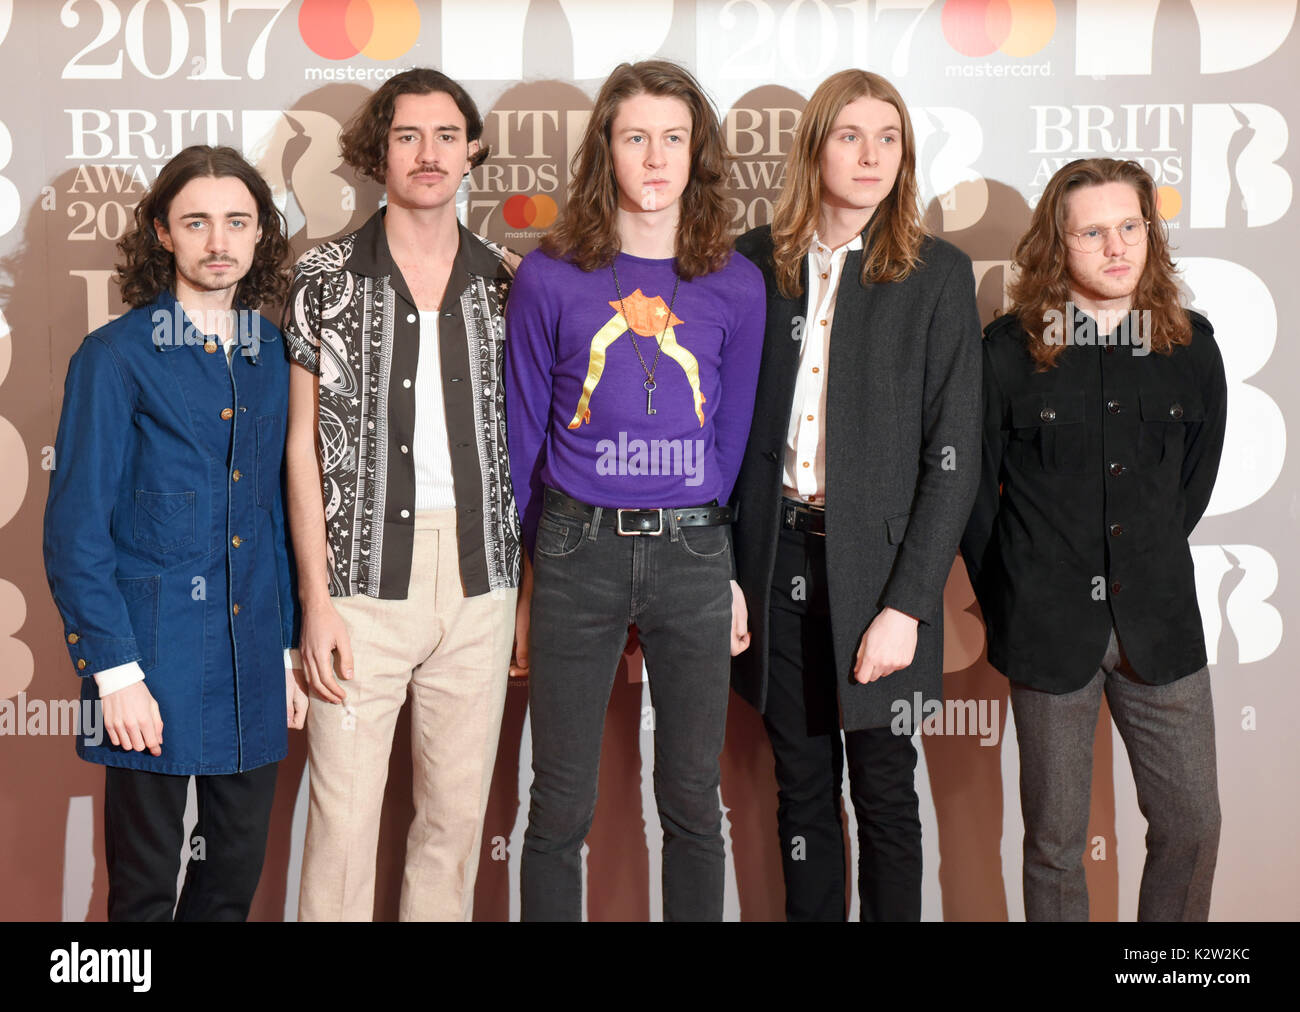 Photo Must Be Credited ©Alpha Press 079965 22/02/2077 Blossoms, Tom Ogden, Charlie Salt, Josh Dewhurst, Joe Donovan and Myles Kellock The Brit Awards 2017 At The O2 Arena London - Stock Image